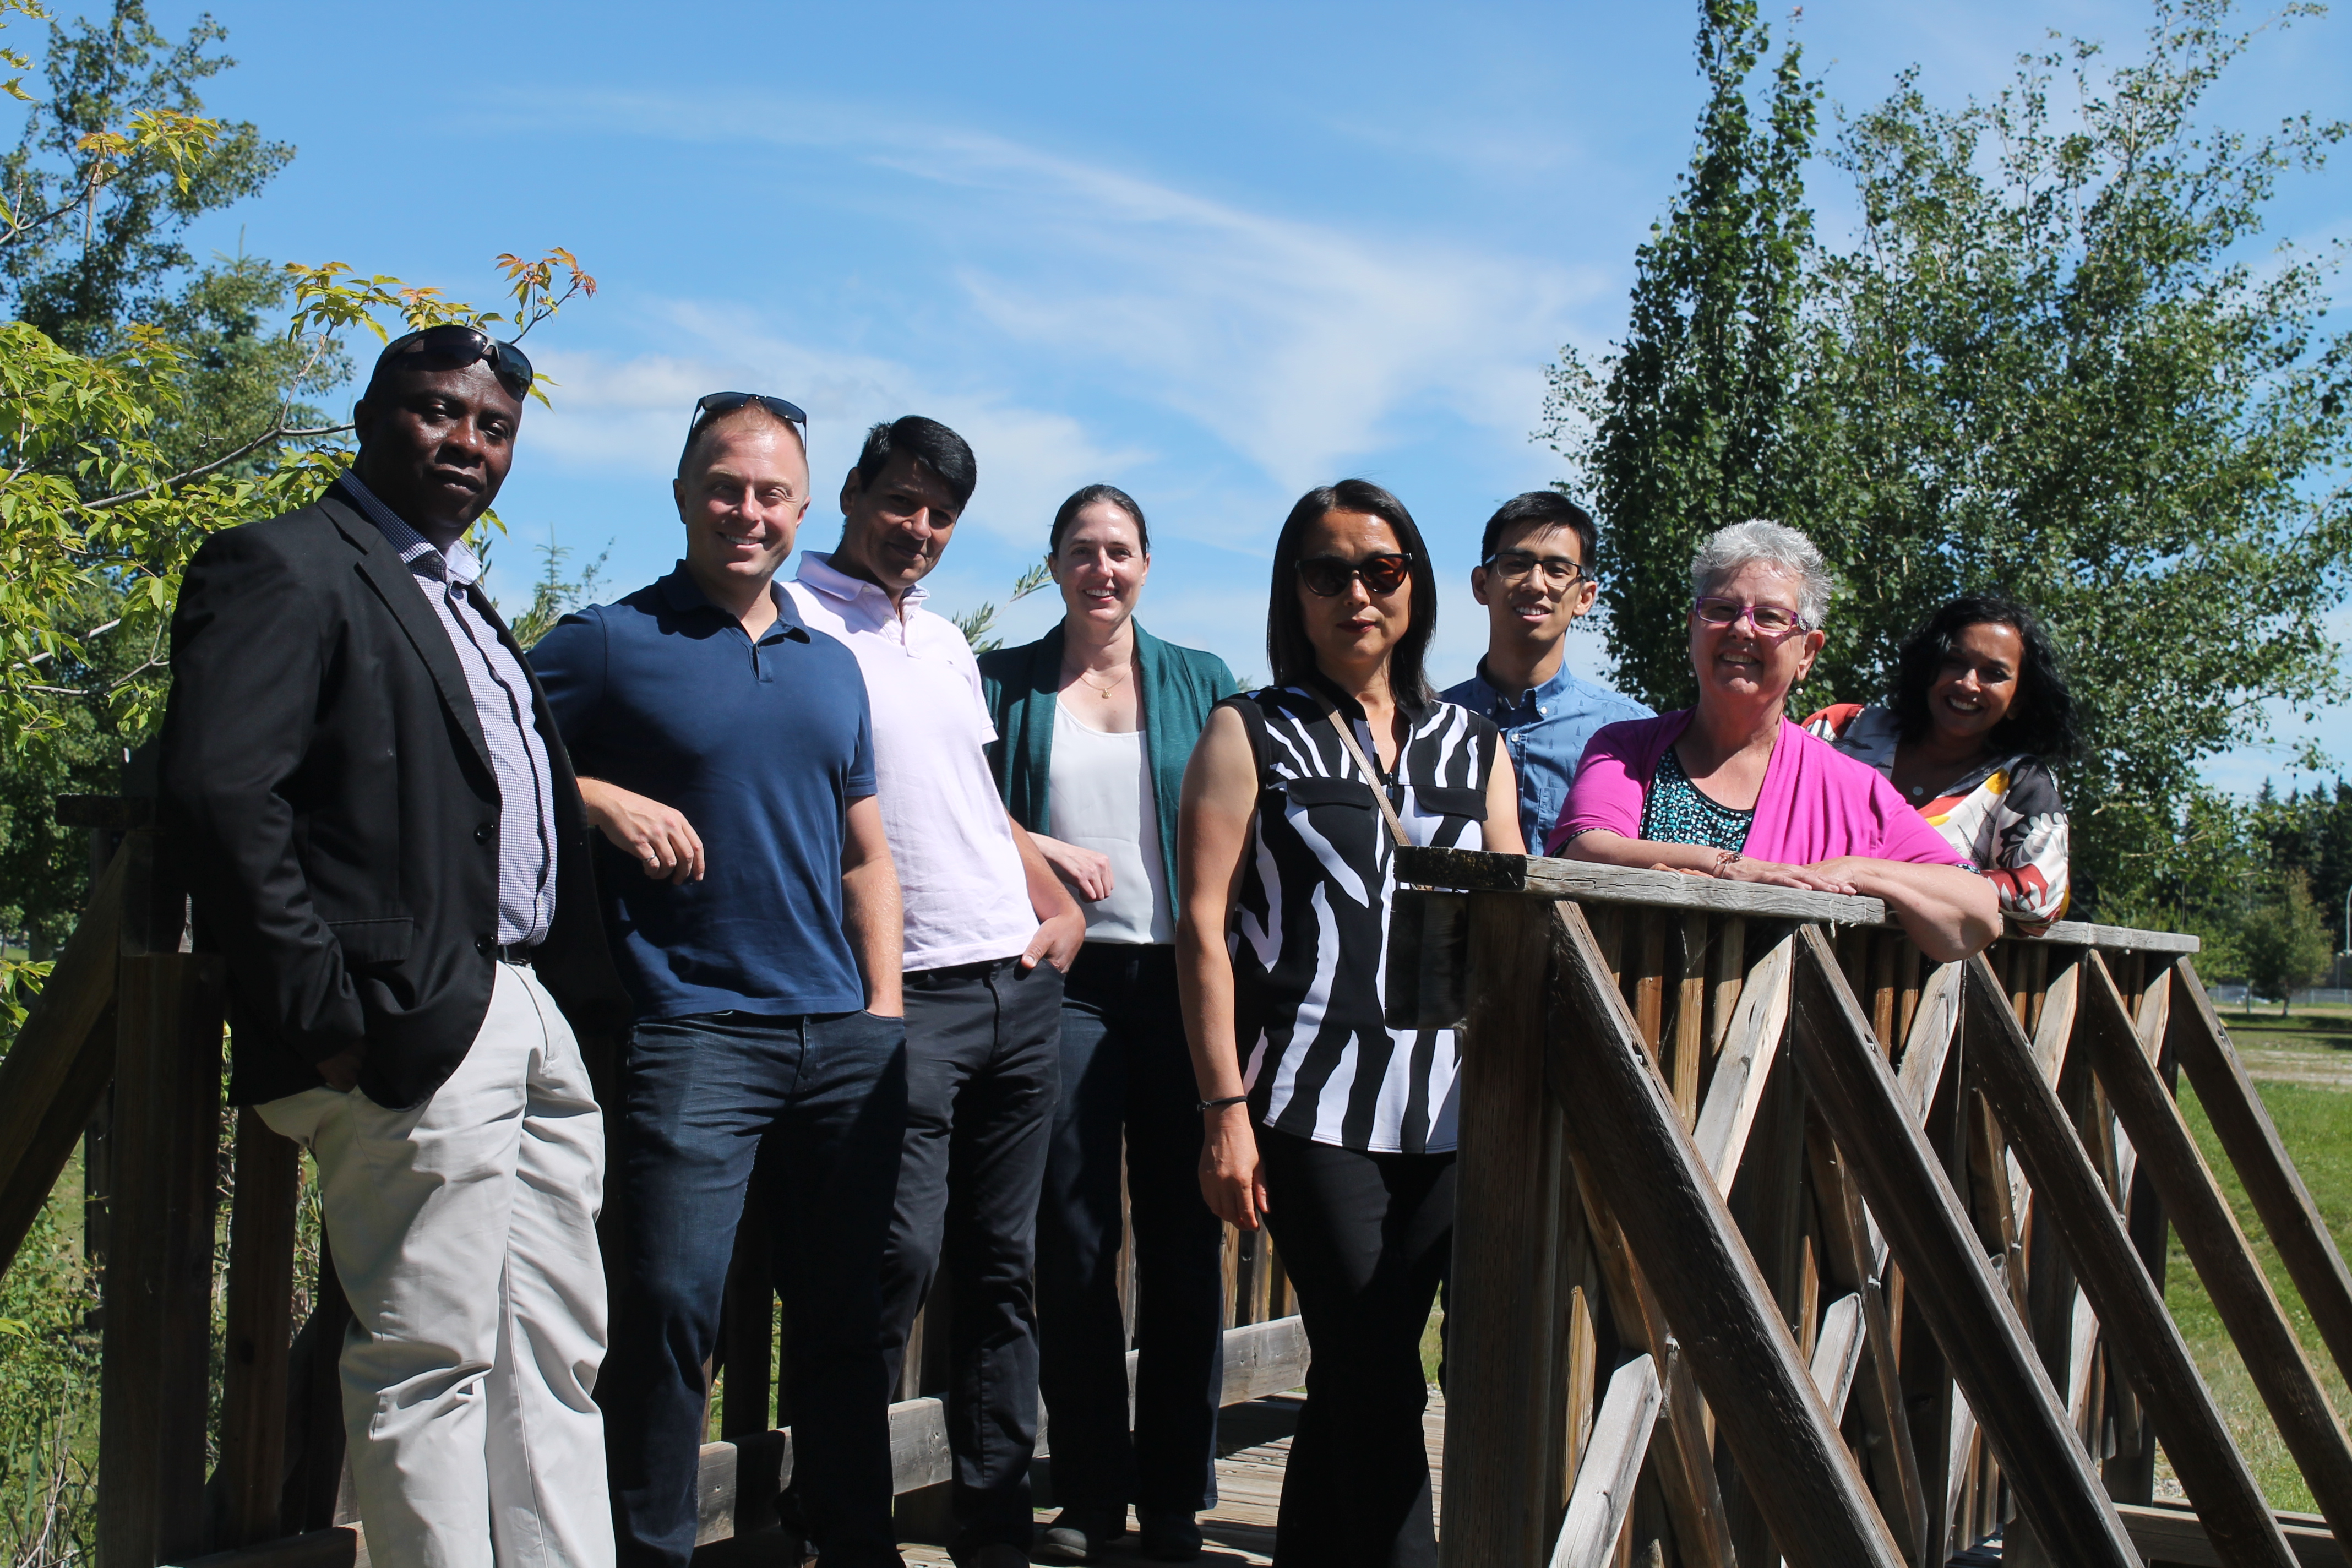 Pivoting Careers into Calgary's Digital Economy: Insights and Feedback from EDGE UP's Cohort 1